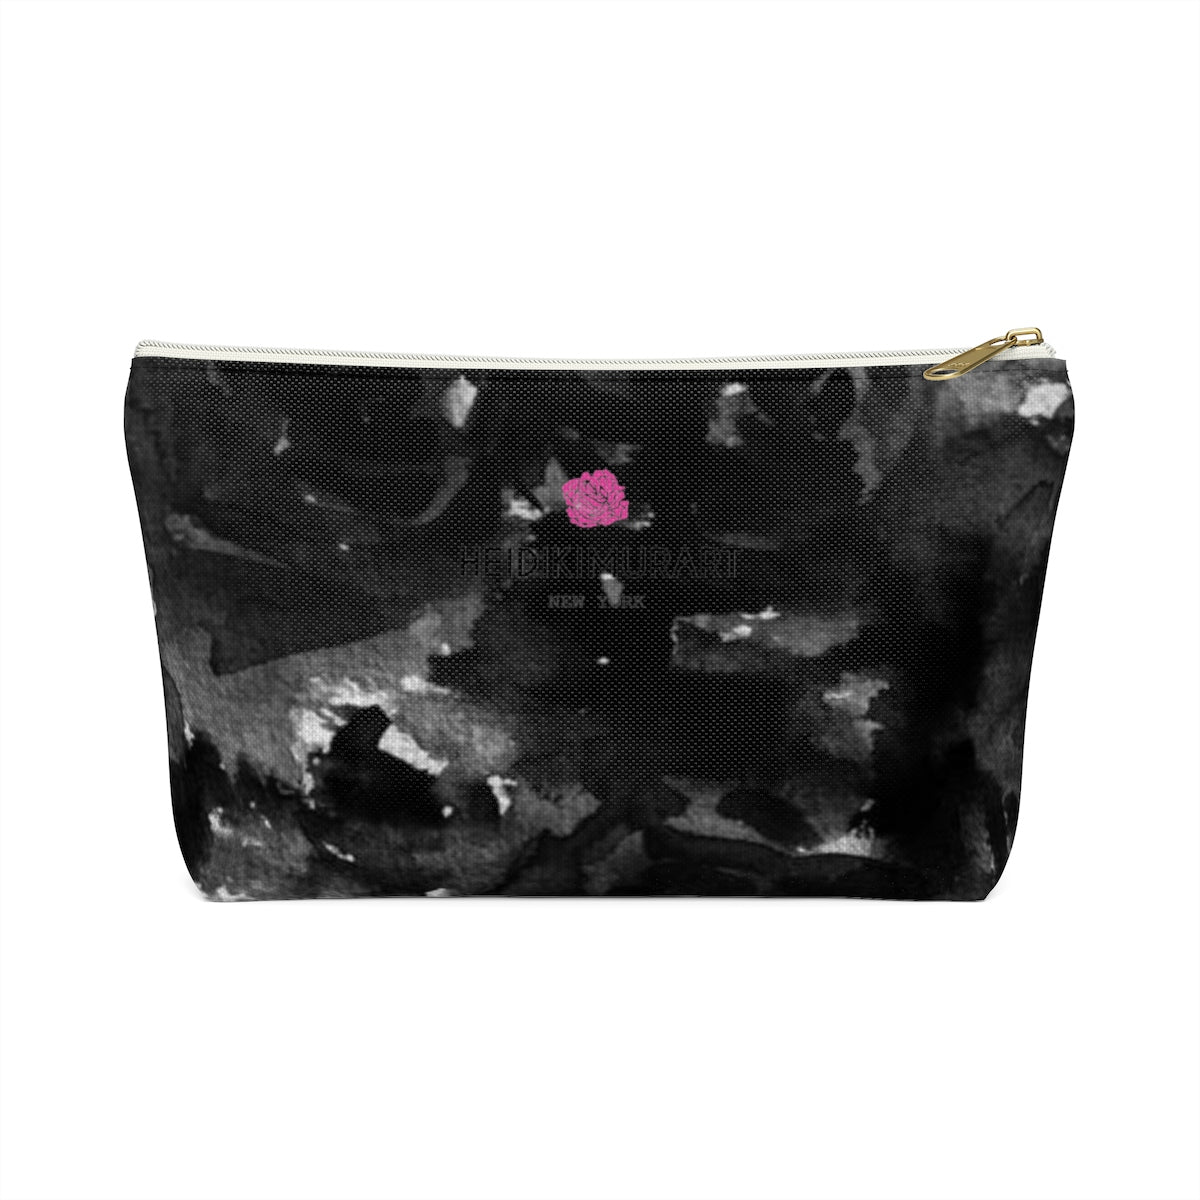 Black Rose Floral Print Designer Accessory Pouch with T-bottom Makeup Bag-Accessory Pouch-White-Small-Heidi Kimura Art LLCBlack Rose Makeup Bag, Black Rose Floral Print Designer Accessory Pouch with T-bottom Makeup Bag - Made in USA